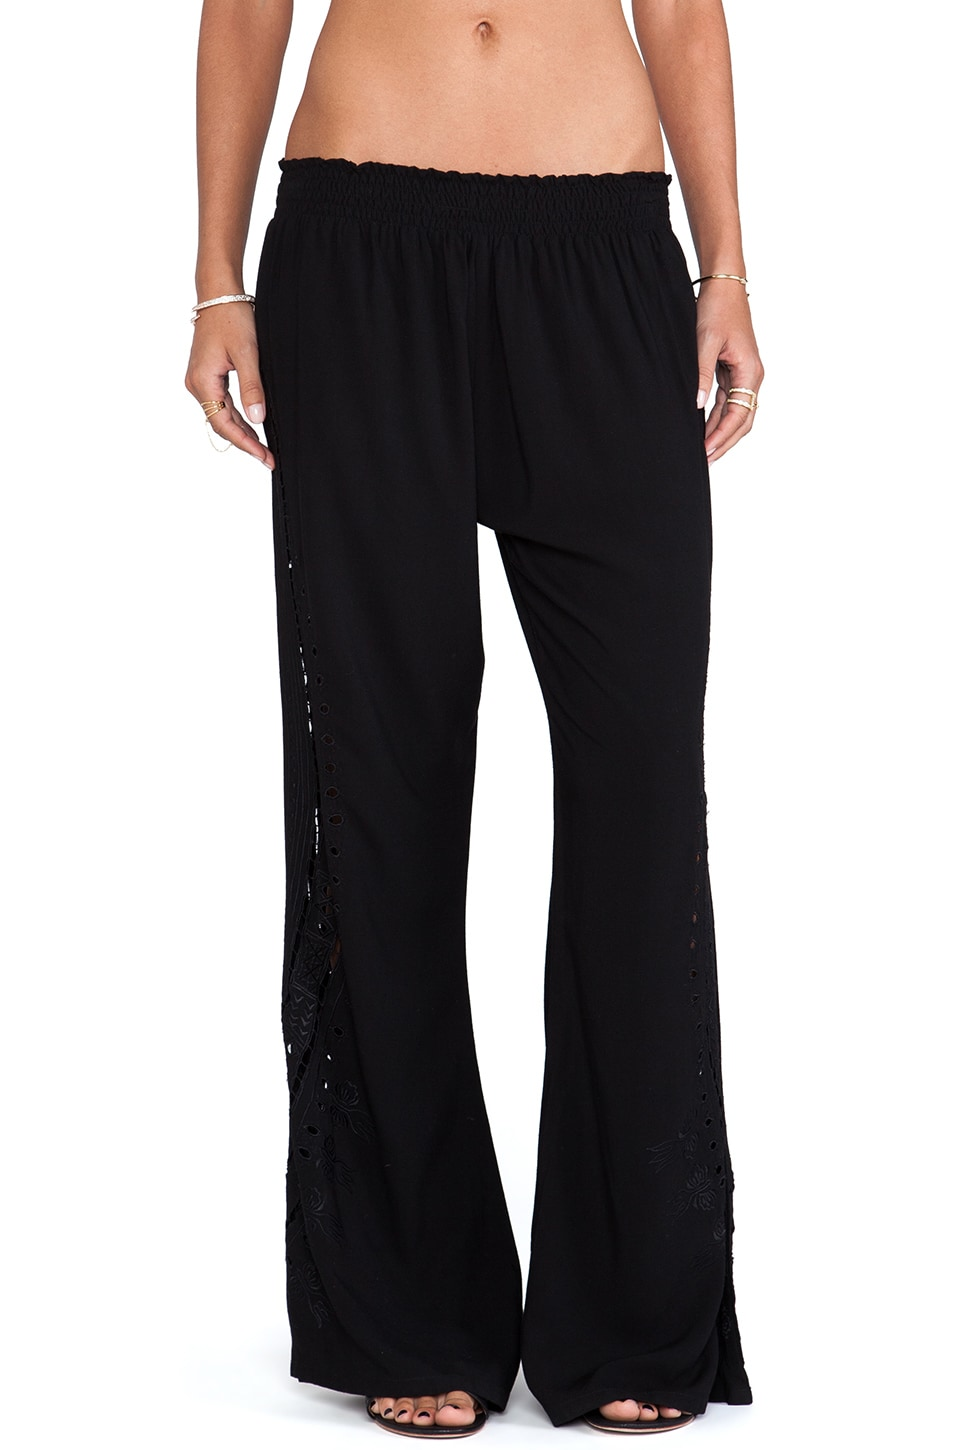 Cleobella Kai Pant in Black